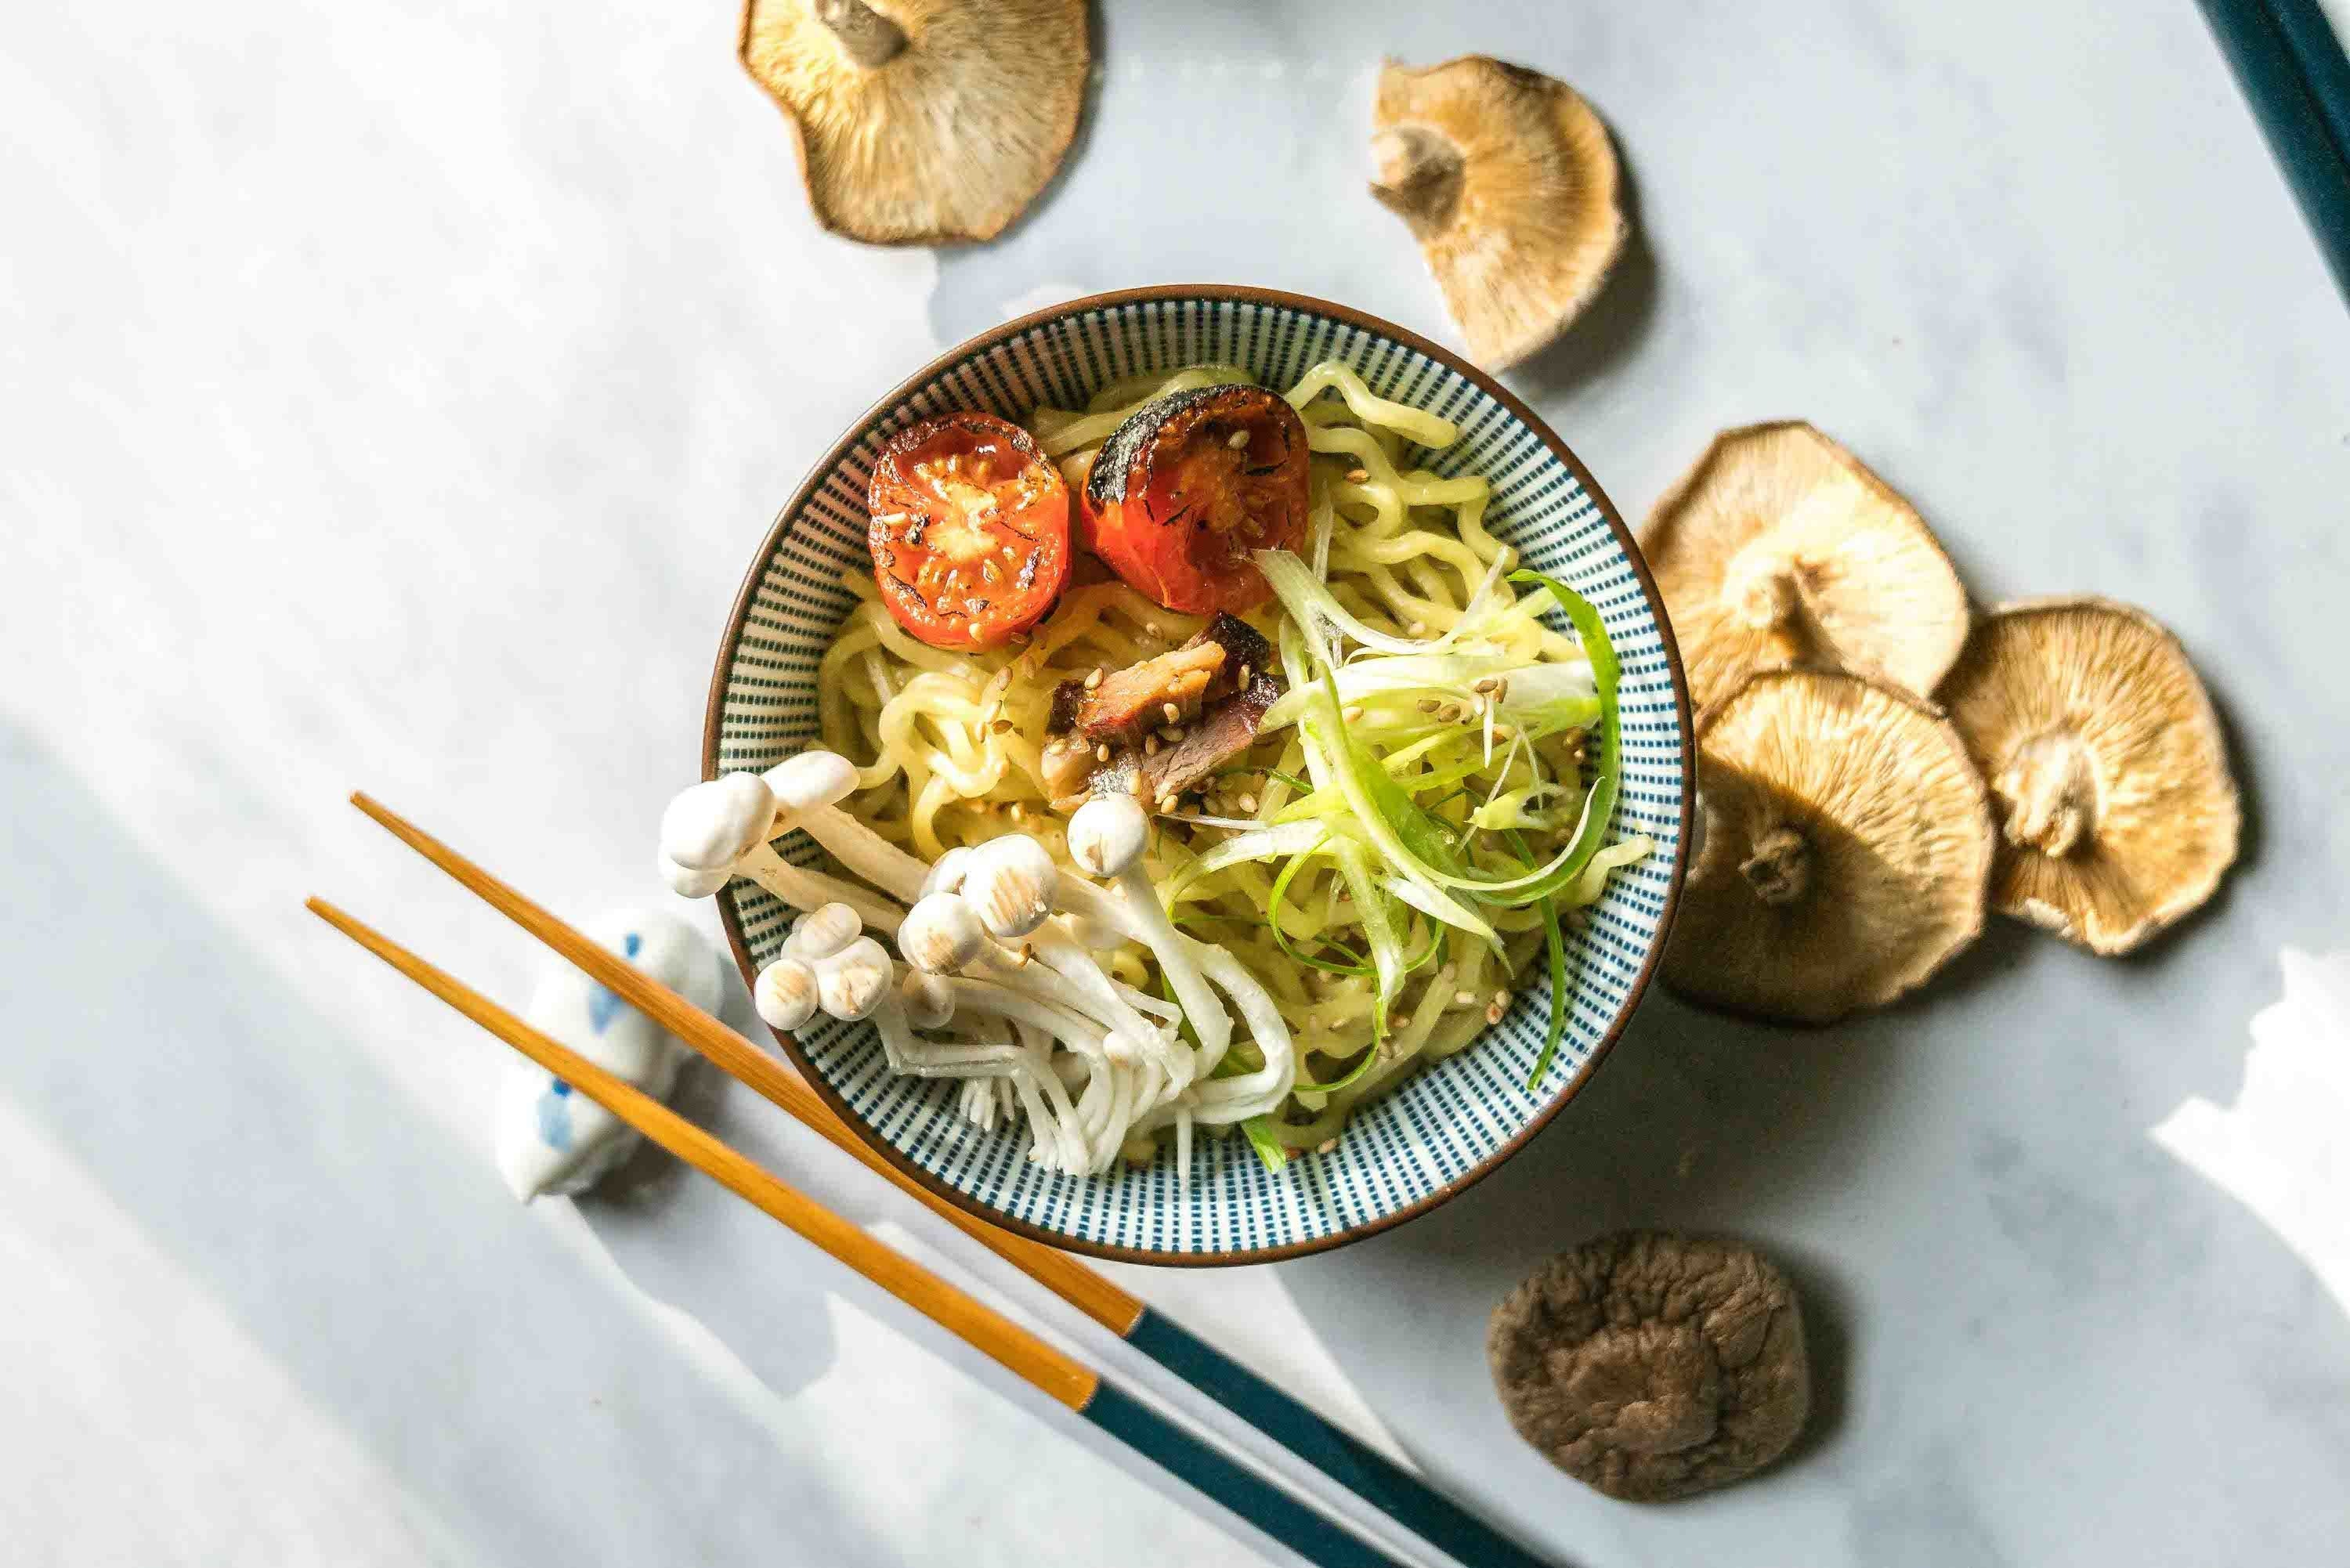 Umami: The Fifth Taste - What It Is and How to Add It to Your Cooking